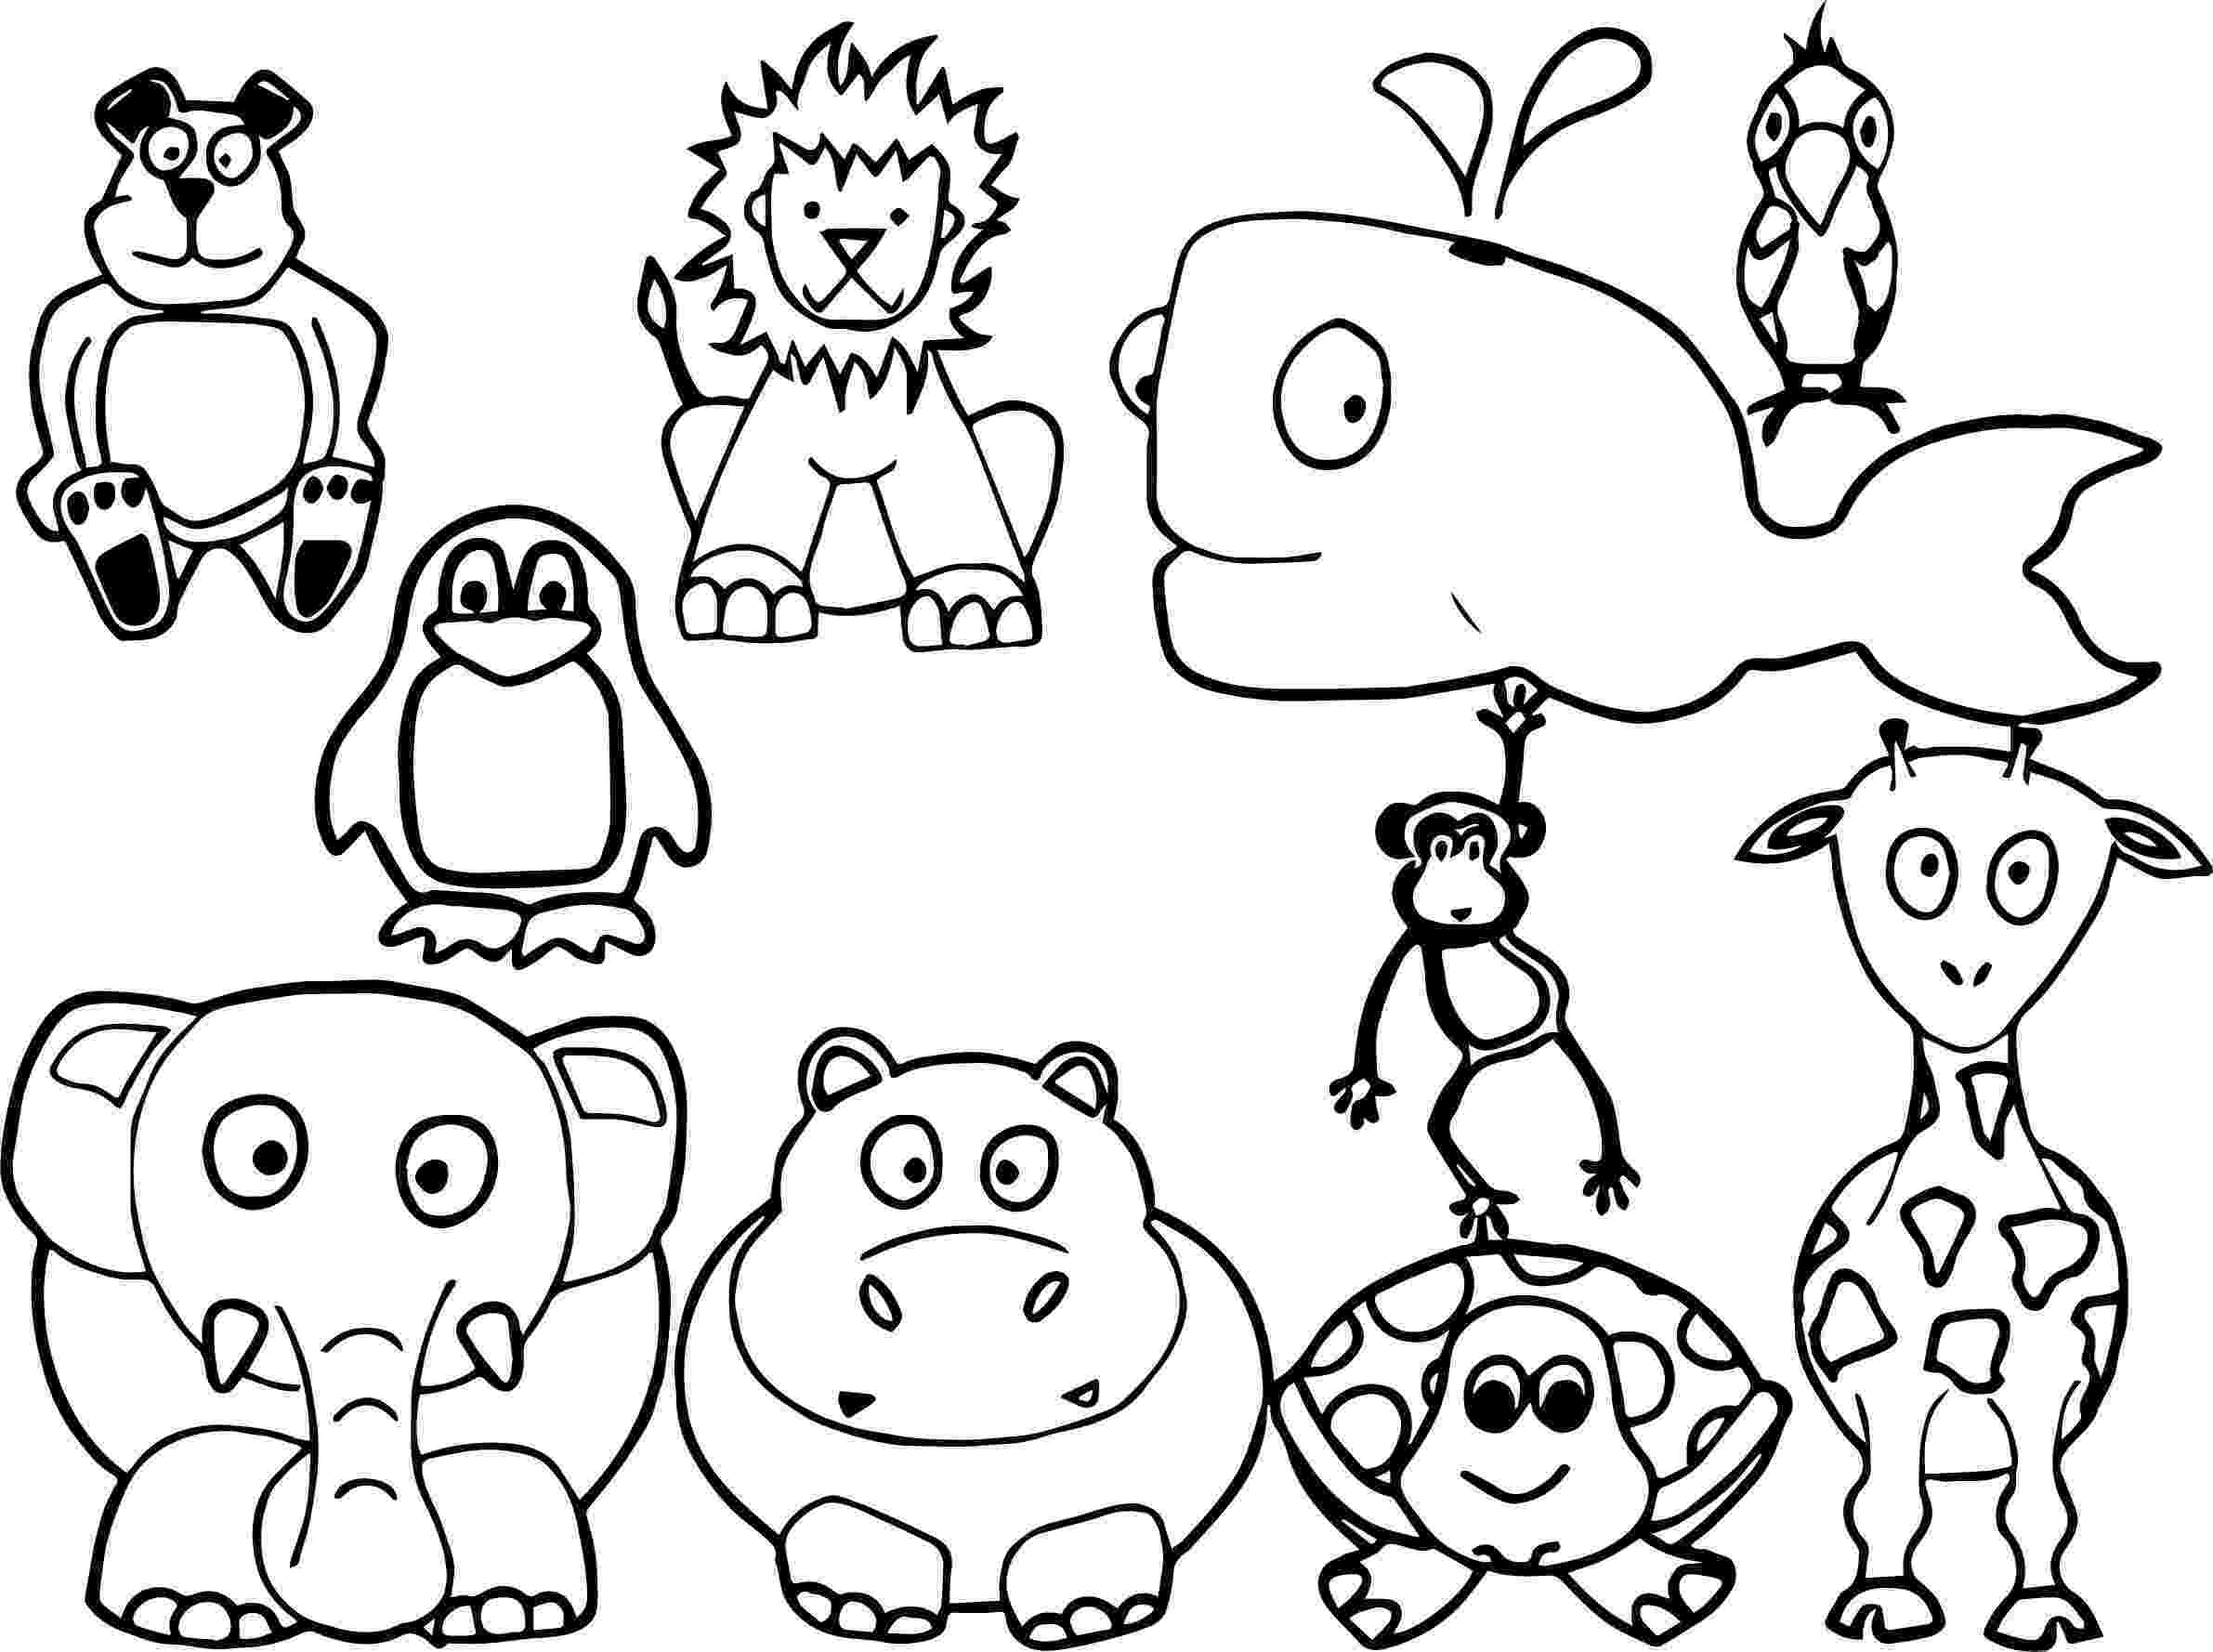 coloring pages animals farm animal coloring pages to download and print for free animals pages coloring